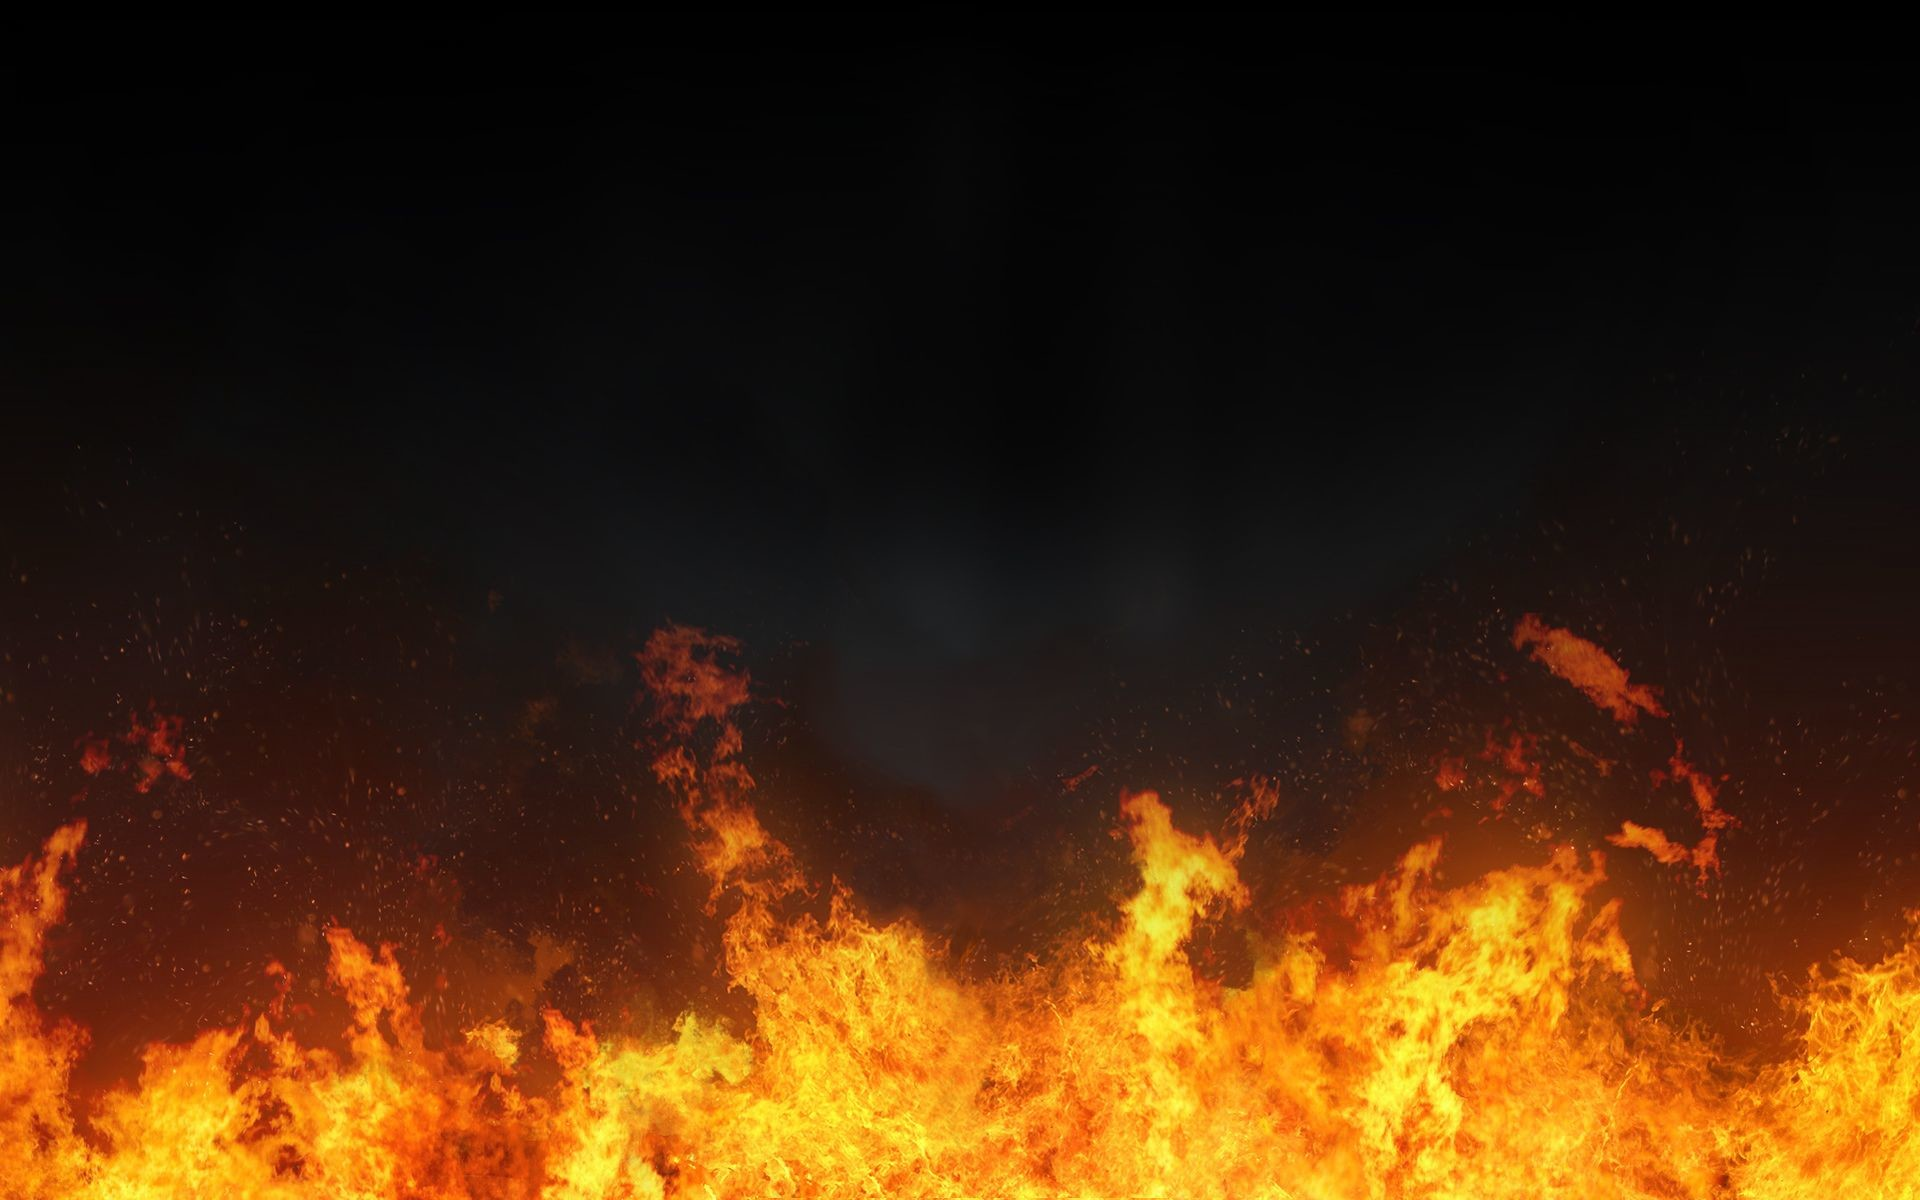 Fire backgrounds free download.